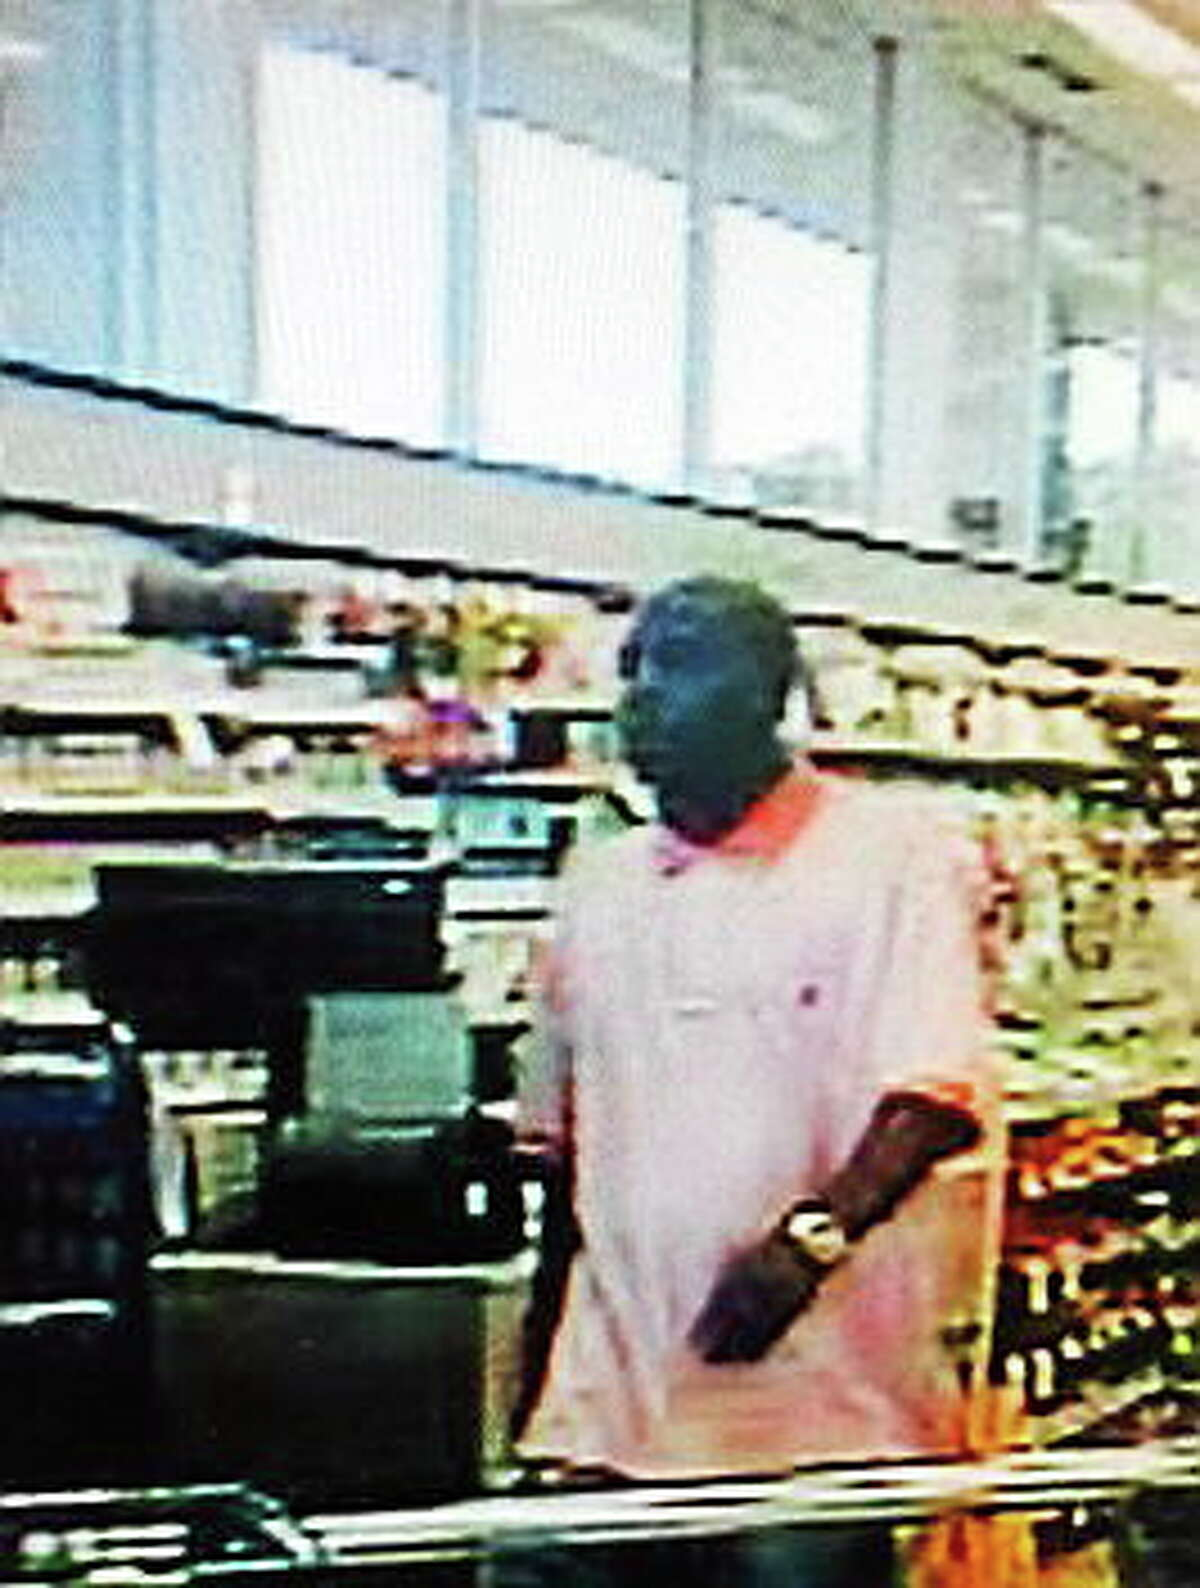 Police are looking to identify this man captured in surveillance footage.